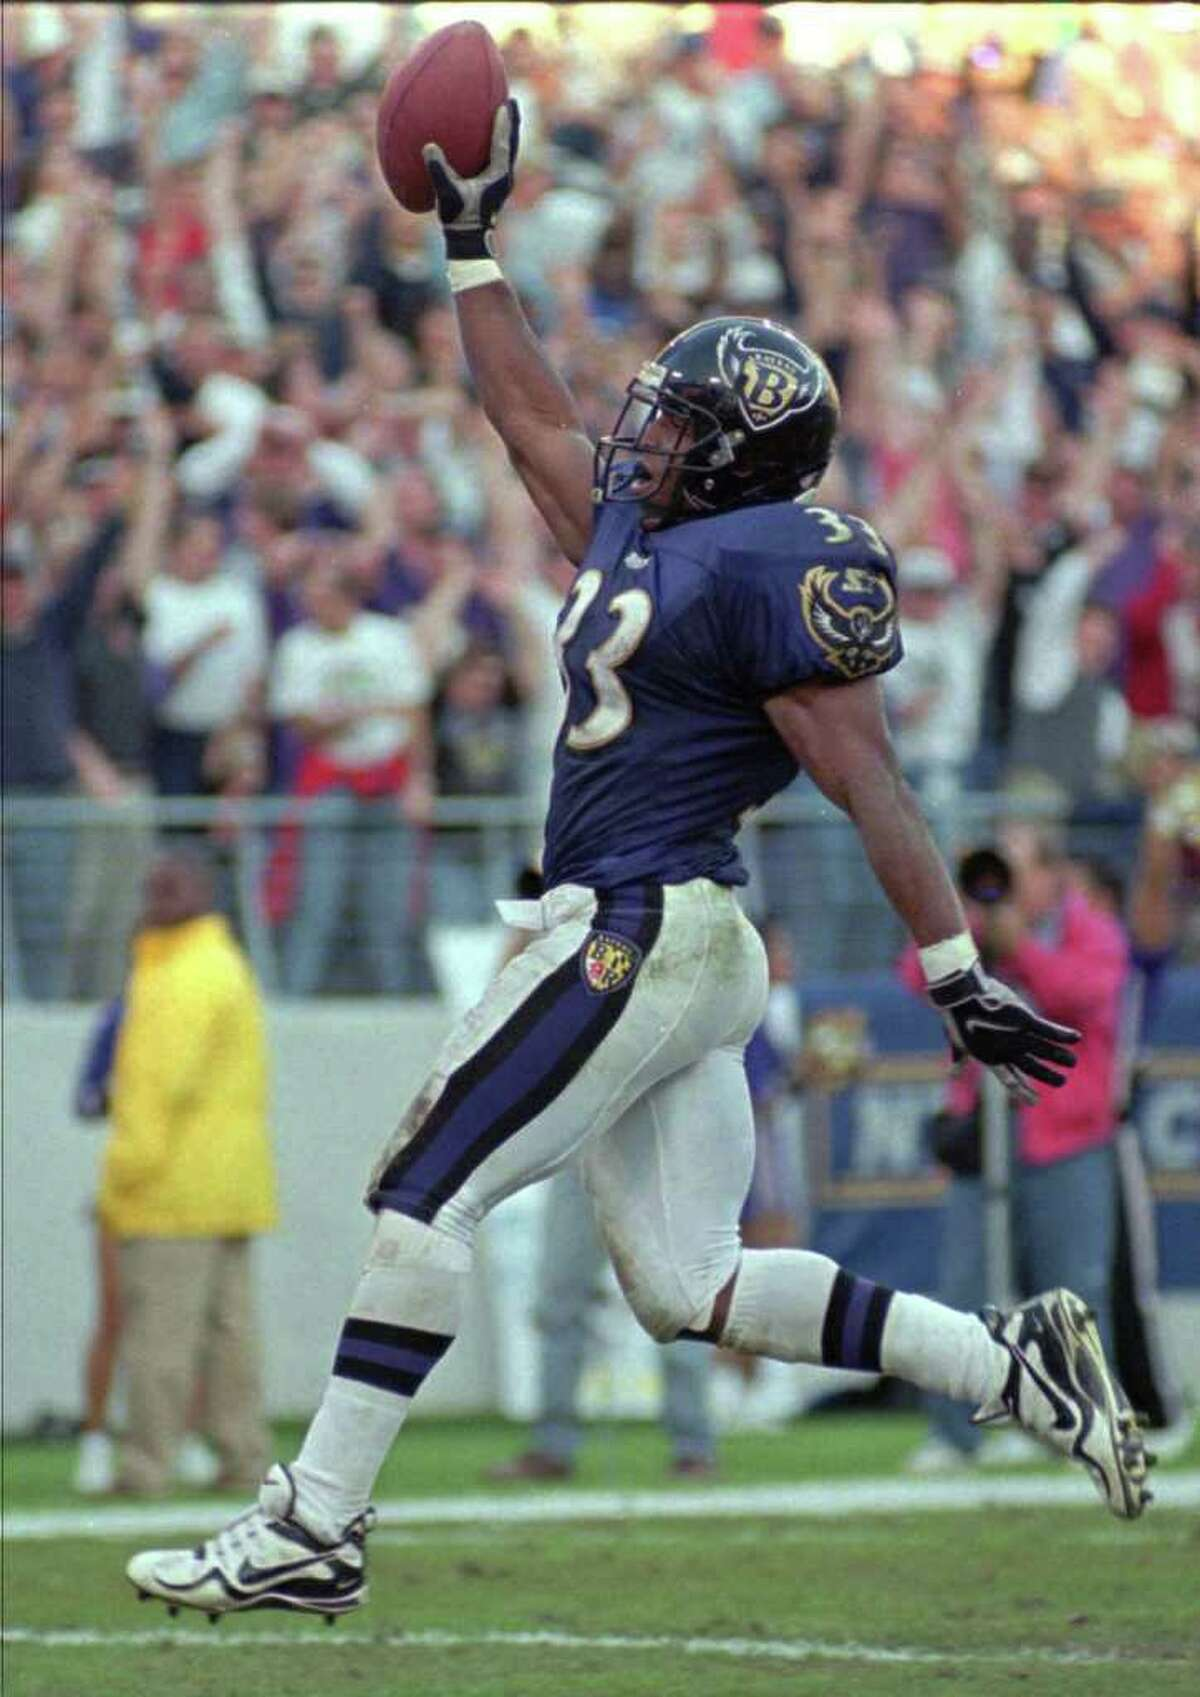 Baltimore Ravens running back Priest Holmes celebrates his touchdown run in the fourth quarter against the Indianapolis Colts Sunday, Nov. 29, 1998. the Ravens won 38-31. (AP Photo/Nick Wass)